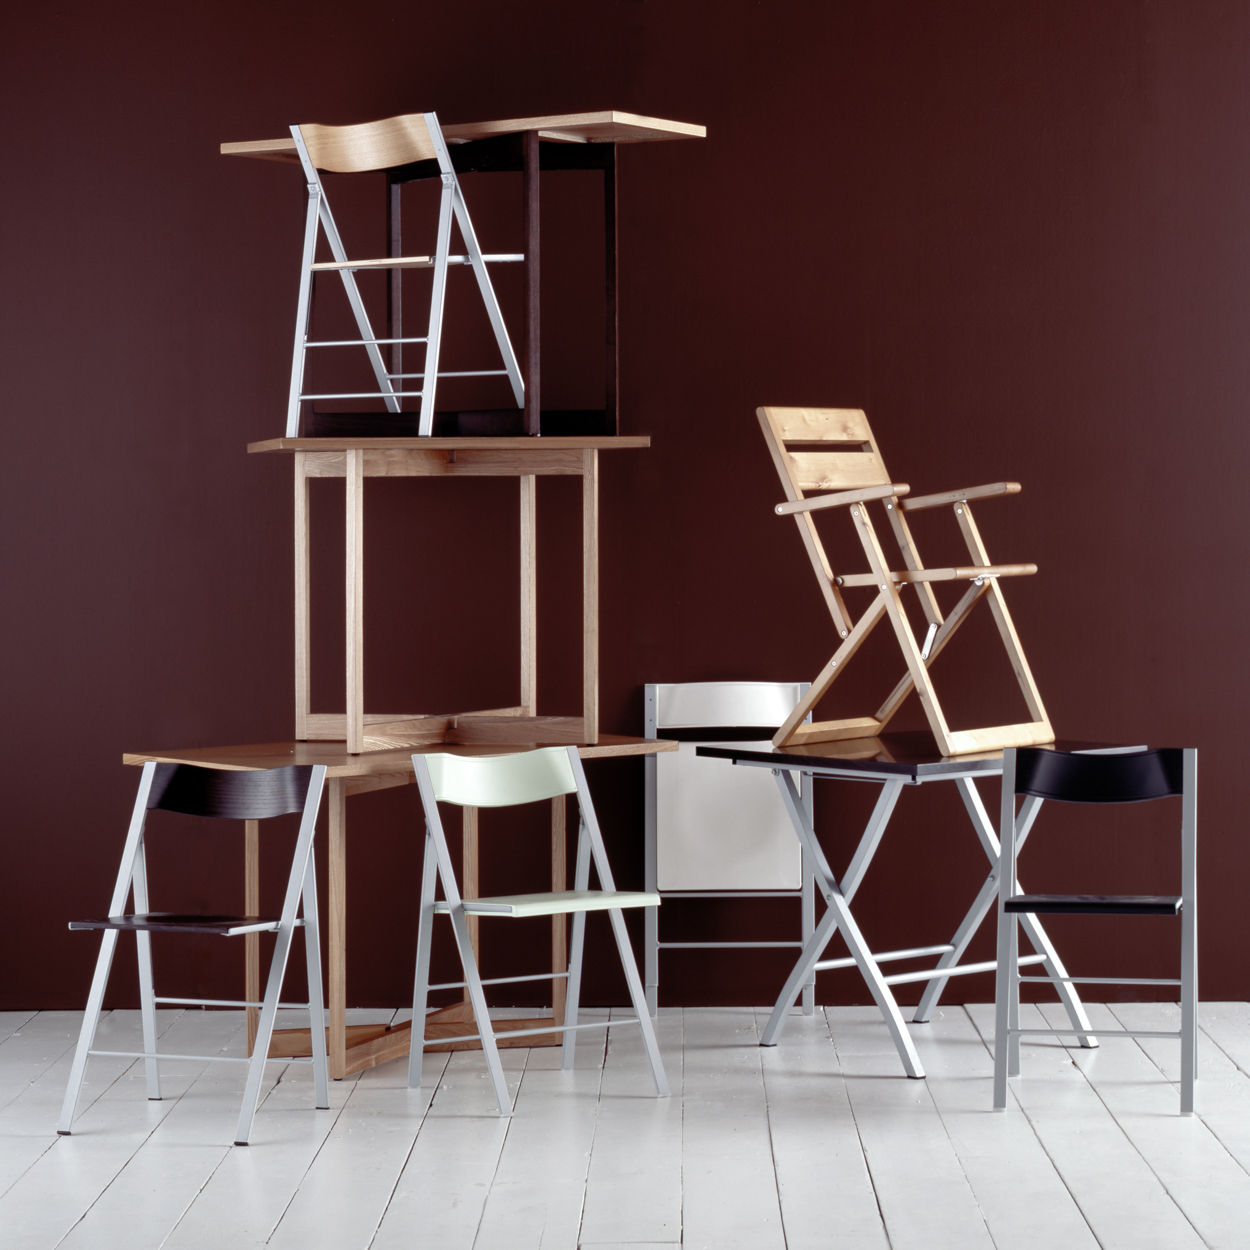 Los Angeles Still Life Photographer - Chair stack  by Ray Kachatorian